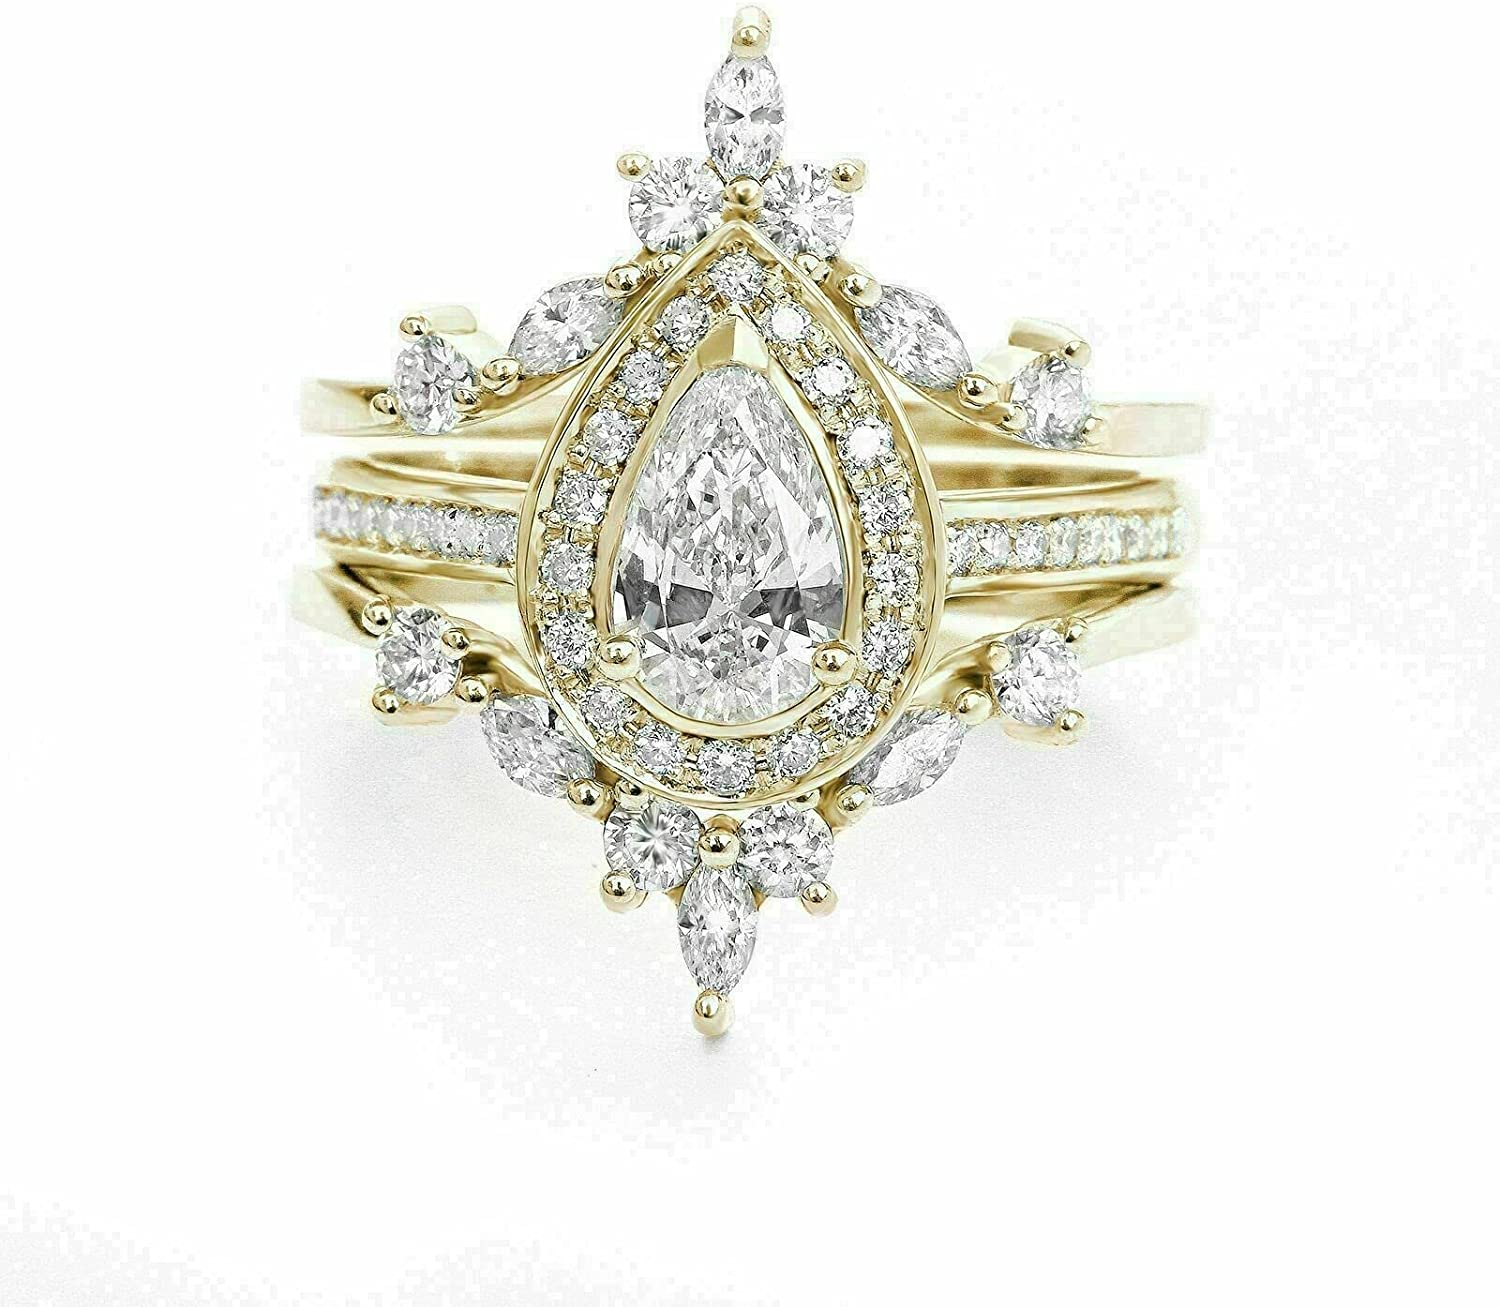 3Ct Pear Cut Diamond Engagement Wedding G Set in Yellow Ring Sale Special Price Branded goods 14K